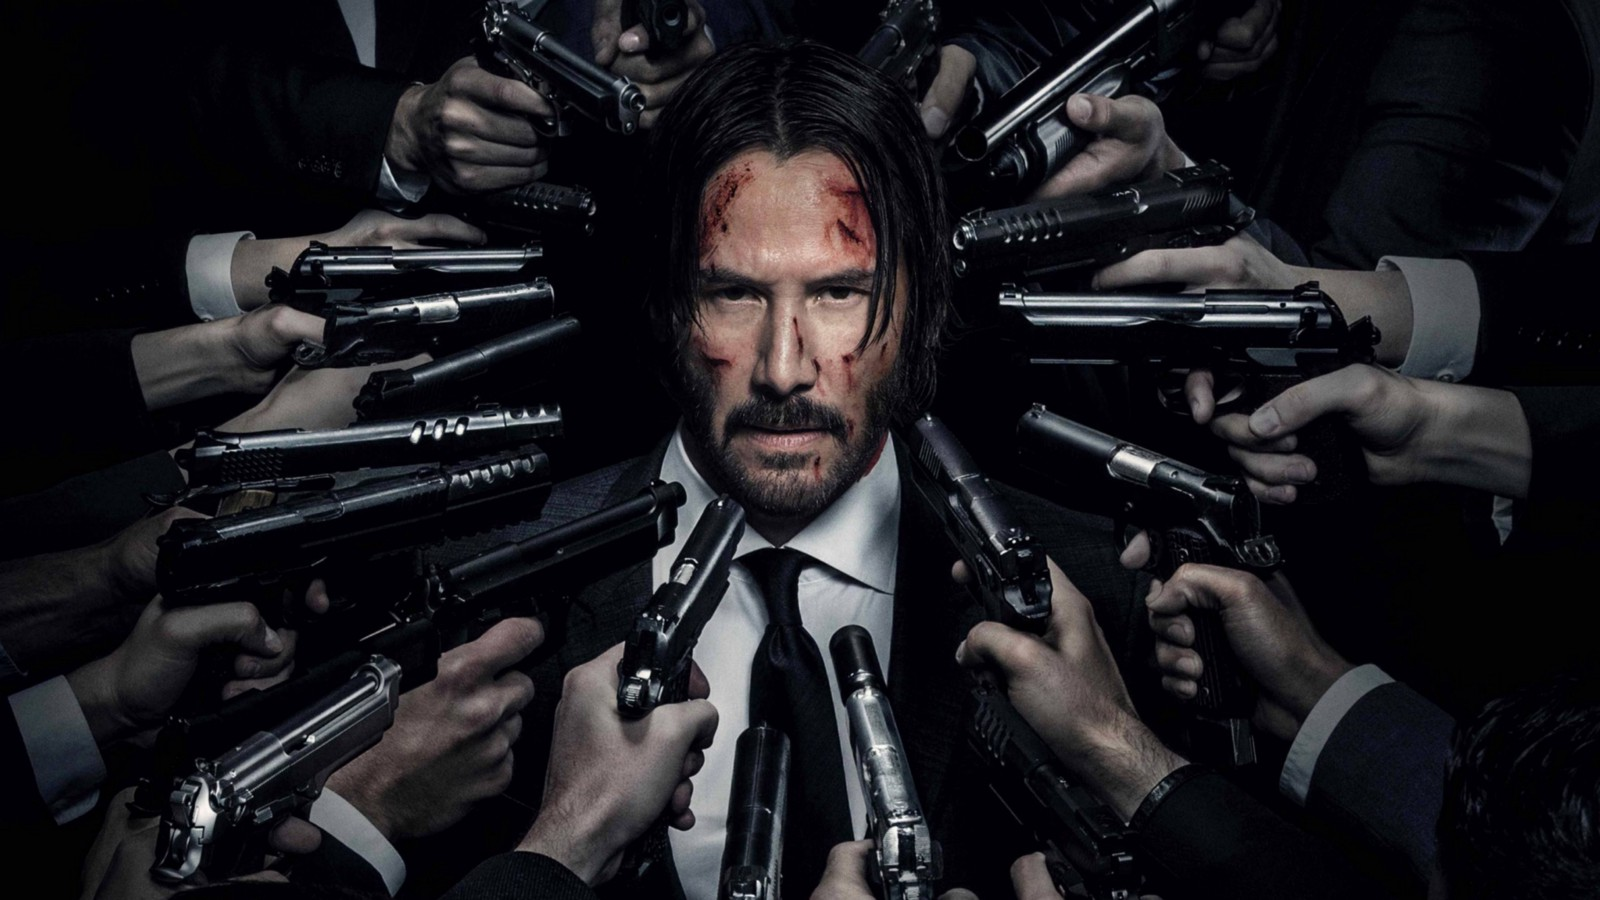 John Wick Chapter 3 - Parabellum Review: When too much isn't a bad thing